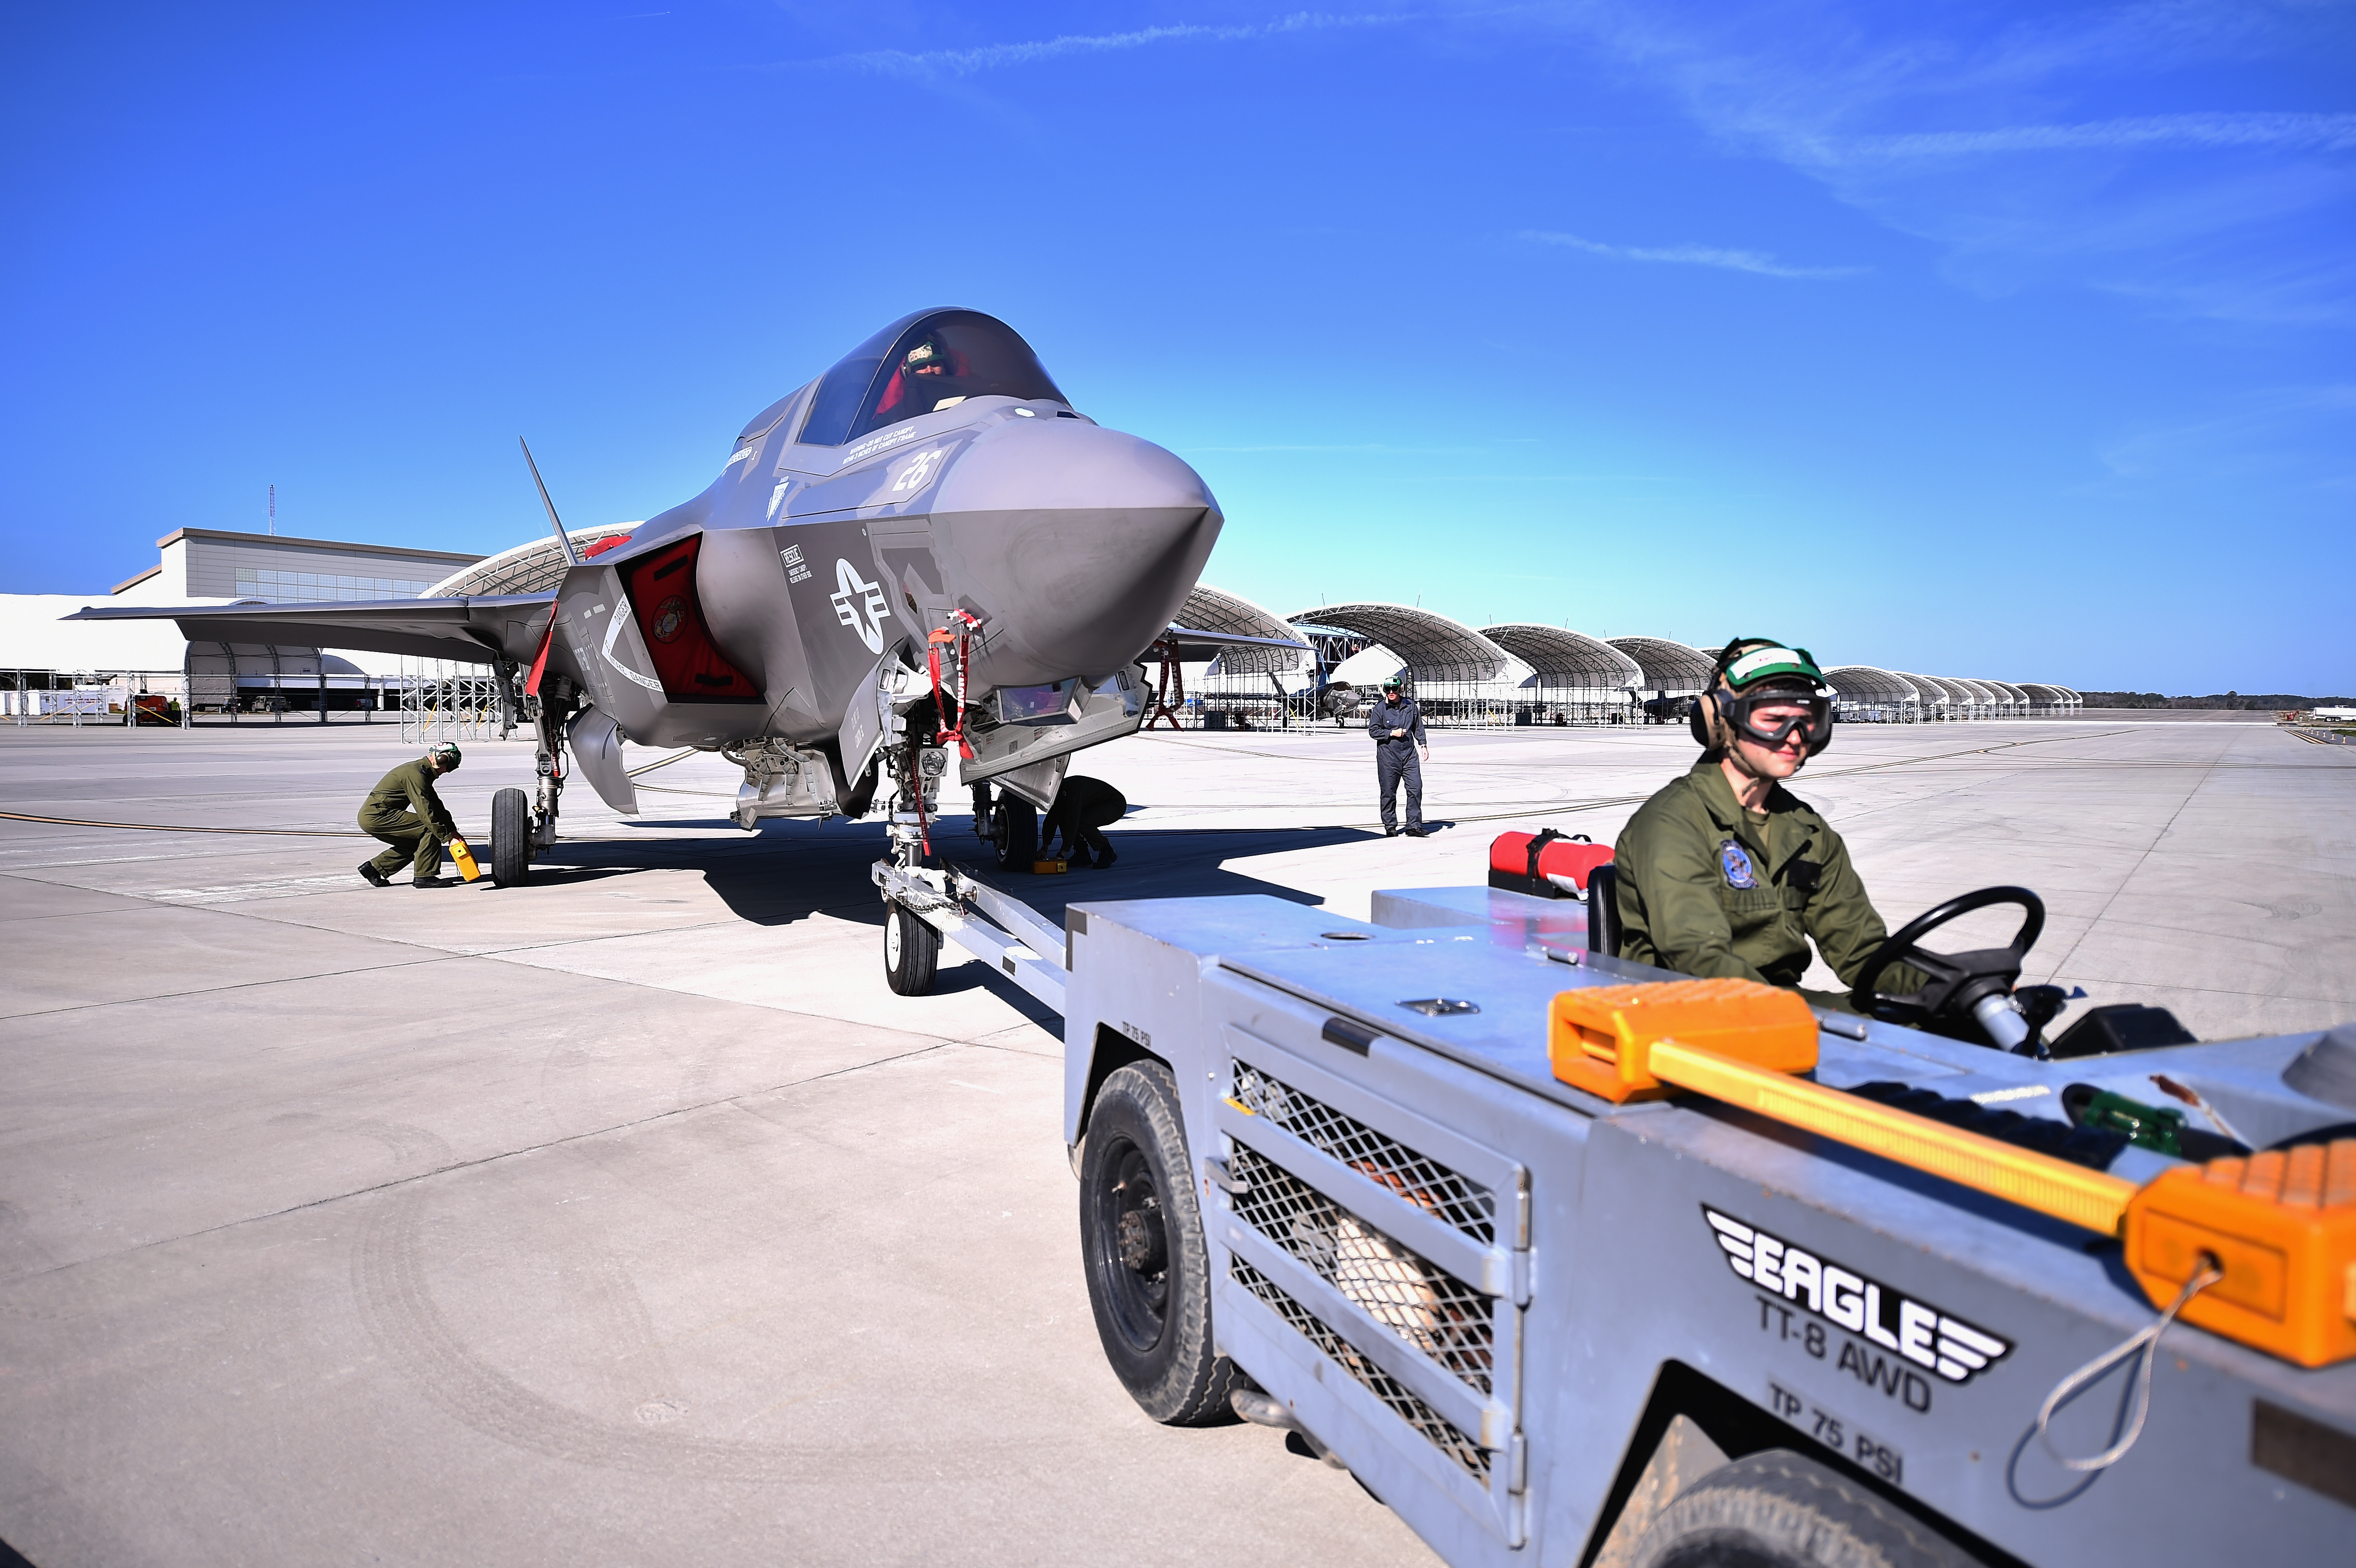 Ground crew maneuver the F-35B at Marine Corps Air Station Beaufort on March 8, 2016. UK personnel from the Royal Navy and Royal Air Force are embedded with the US Marine Corps on the F-35 operational training program, based in Beaufort, South Carolina. (Photo by Jeff J Mitchell/Getty Images)